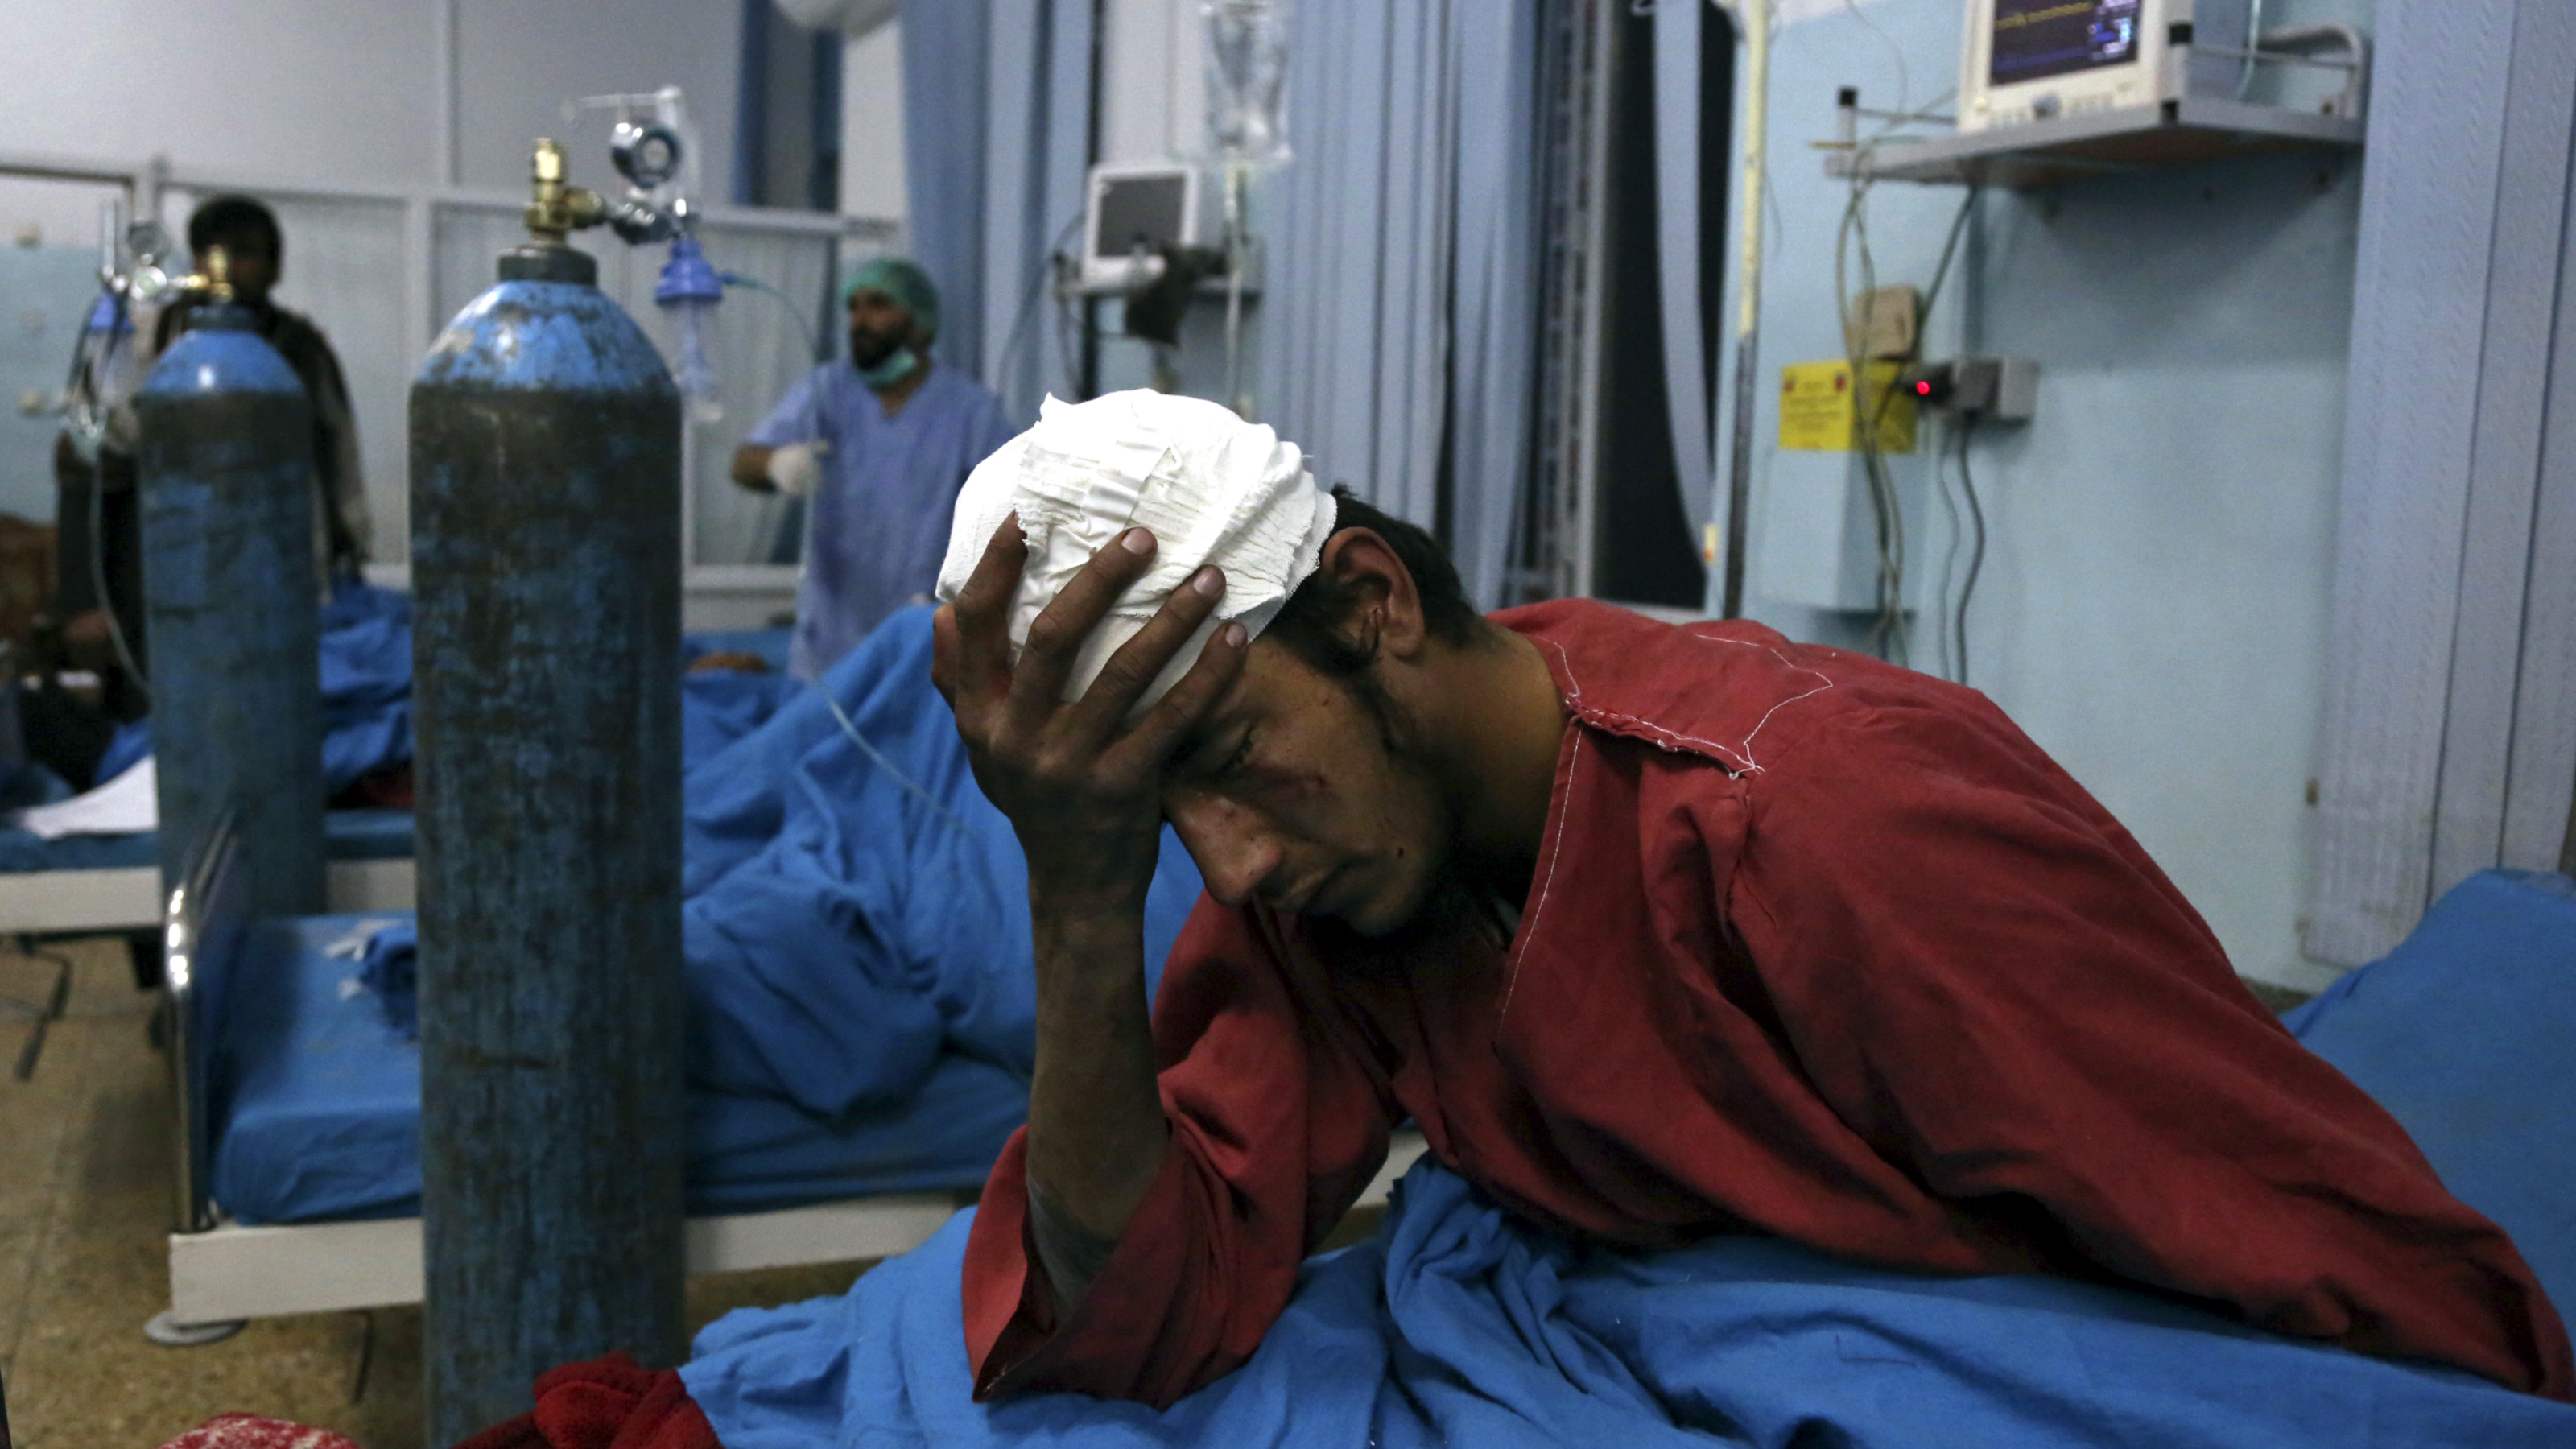 An injured man receives treatment at a hospital after a suicide bombing in Kabul, Afghanistan, Nov. 20, 2018. Afghan officials said the suicide bomber targeted a gathering of Muslim religious scholars in Kabul, killing tens of people. A Public Health Ministry spokesman said another 60 people were wounded in the attack, which took place as Muslims around the world marked the birthday of the Prophet Mohammad.